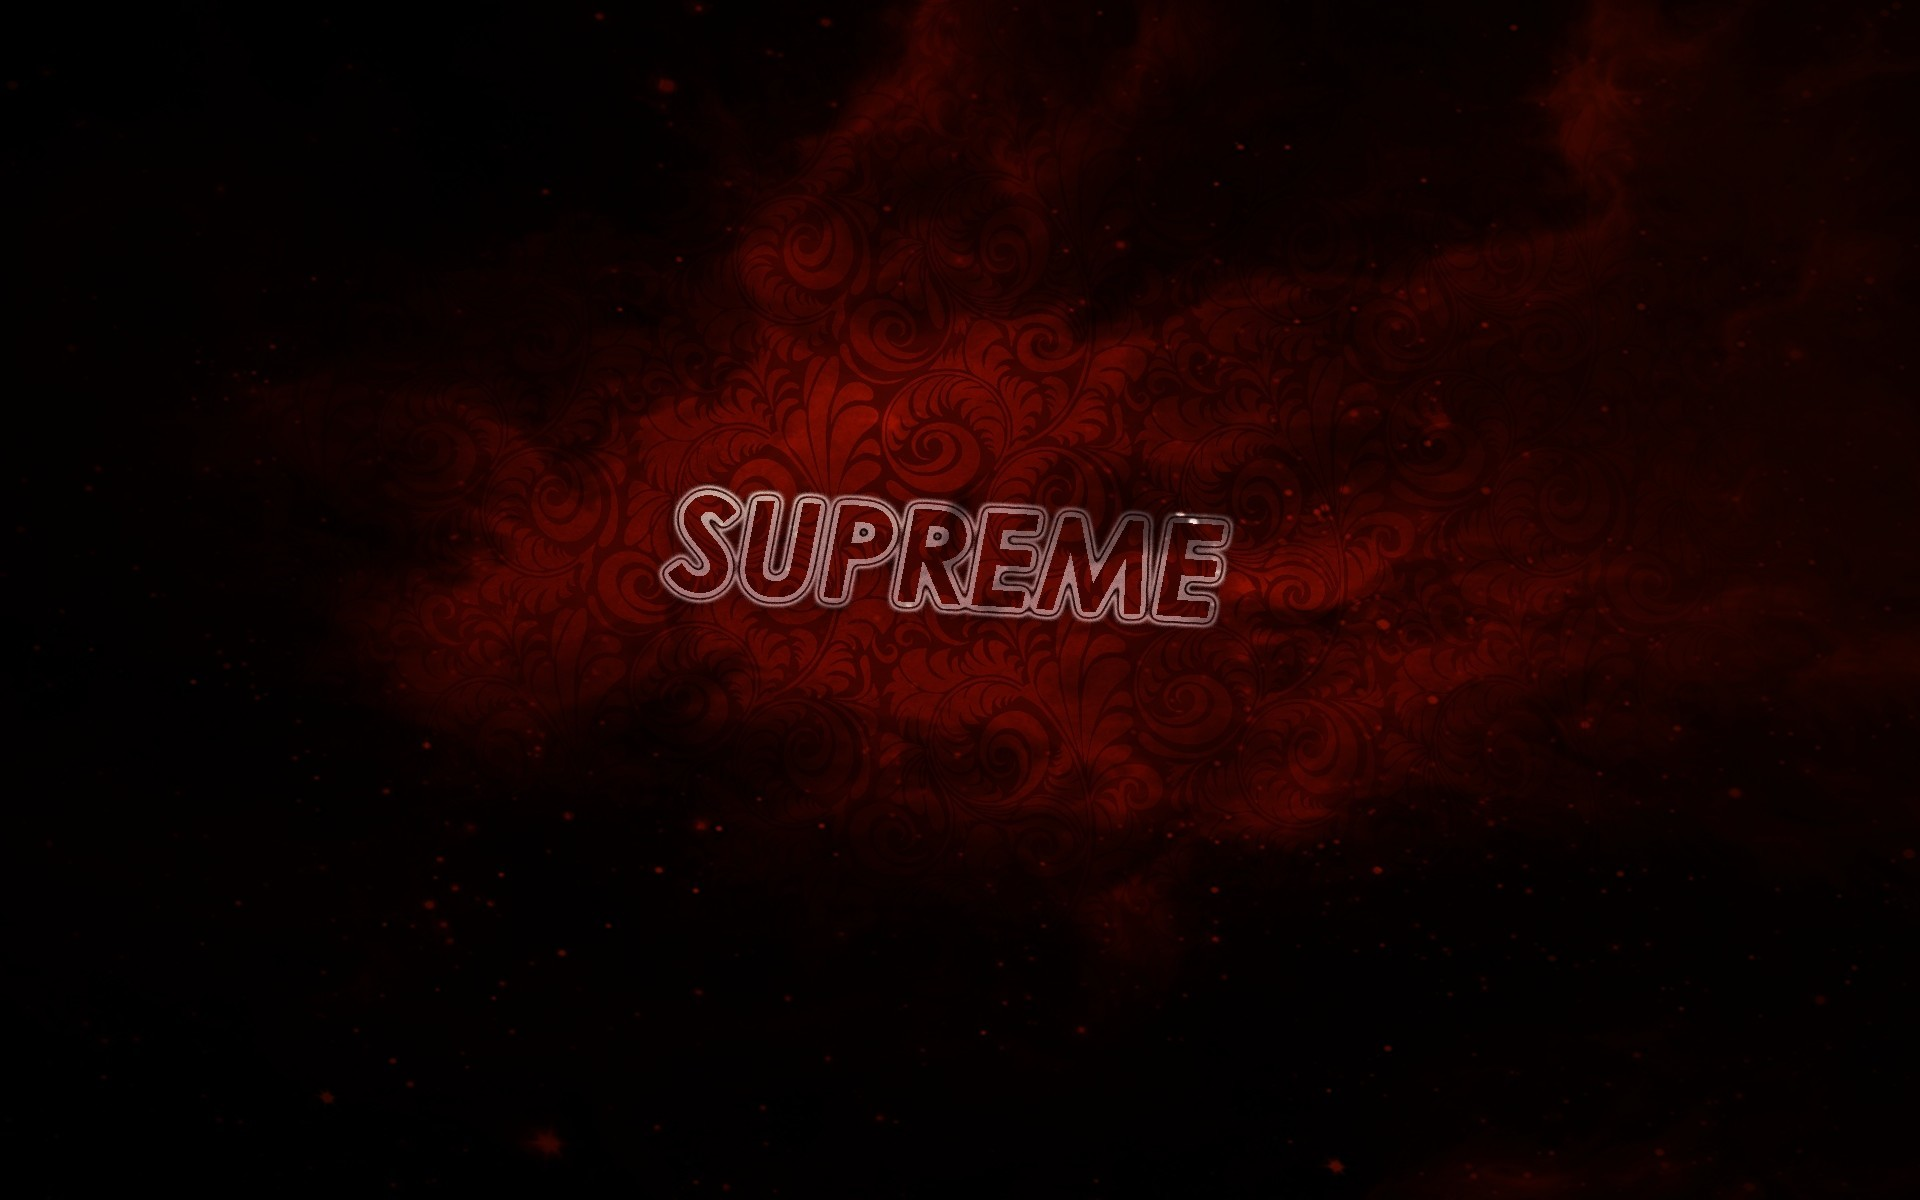 Supreme Gir Wallpaper 82 Images